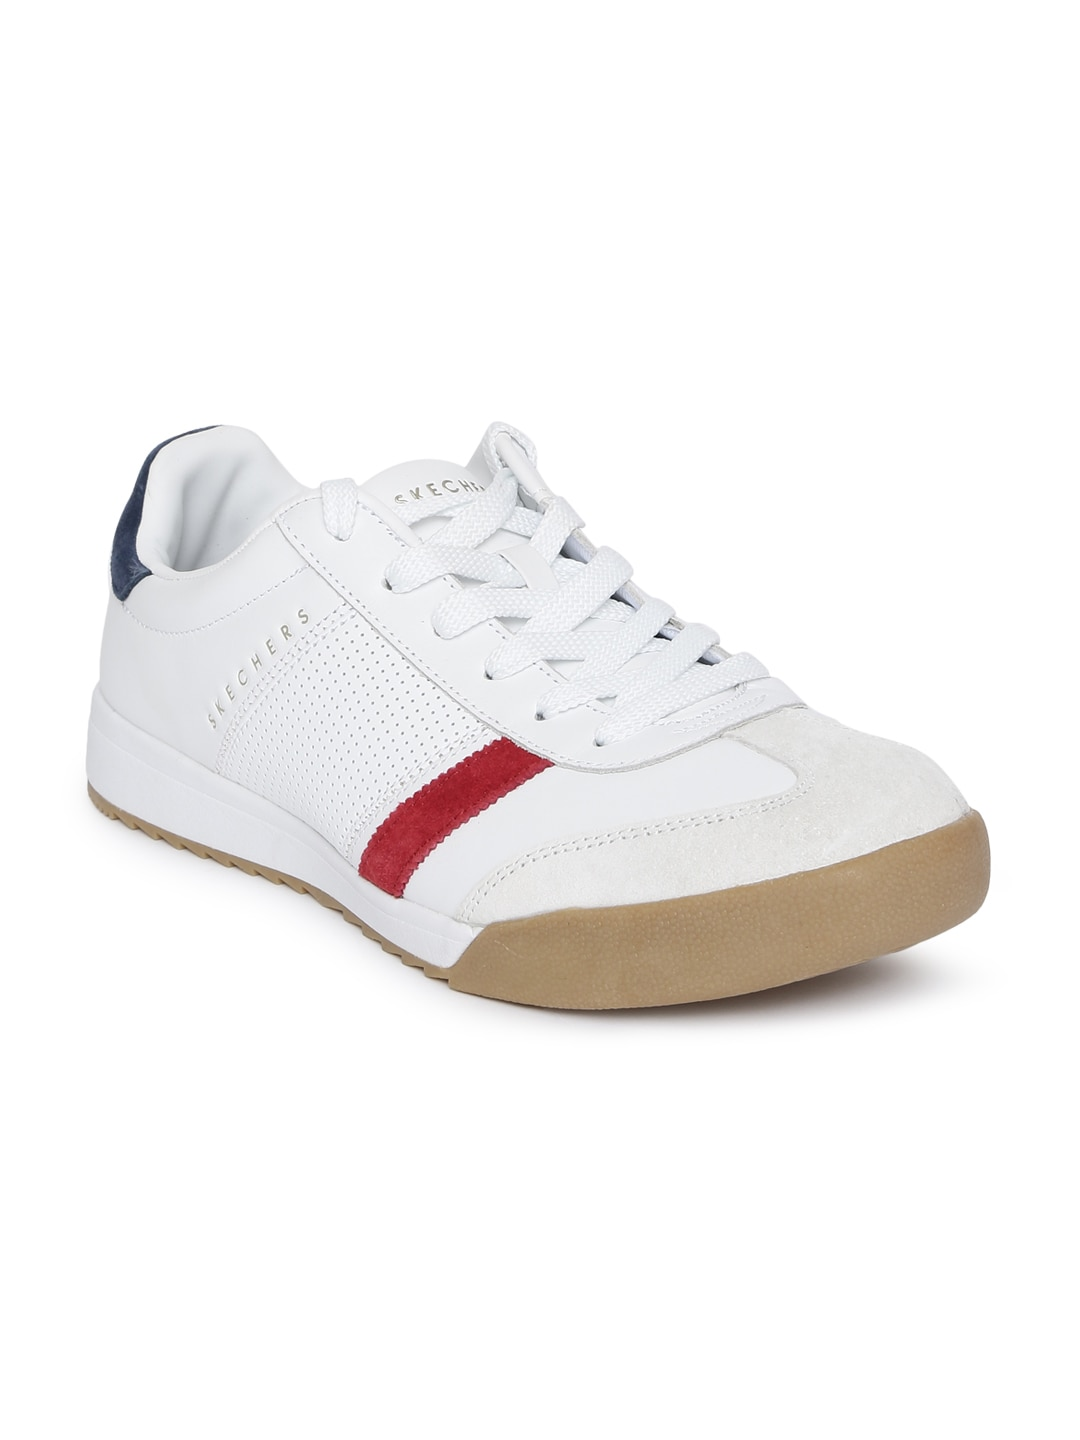 311df770be0c Skechers Synthetic Leather Casual Shoes - Buy Skechers Synthetic Leather  Casual Shoes online in India